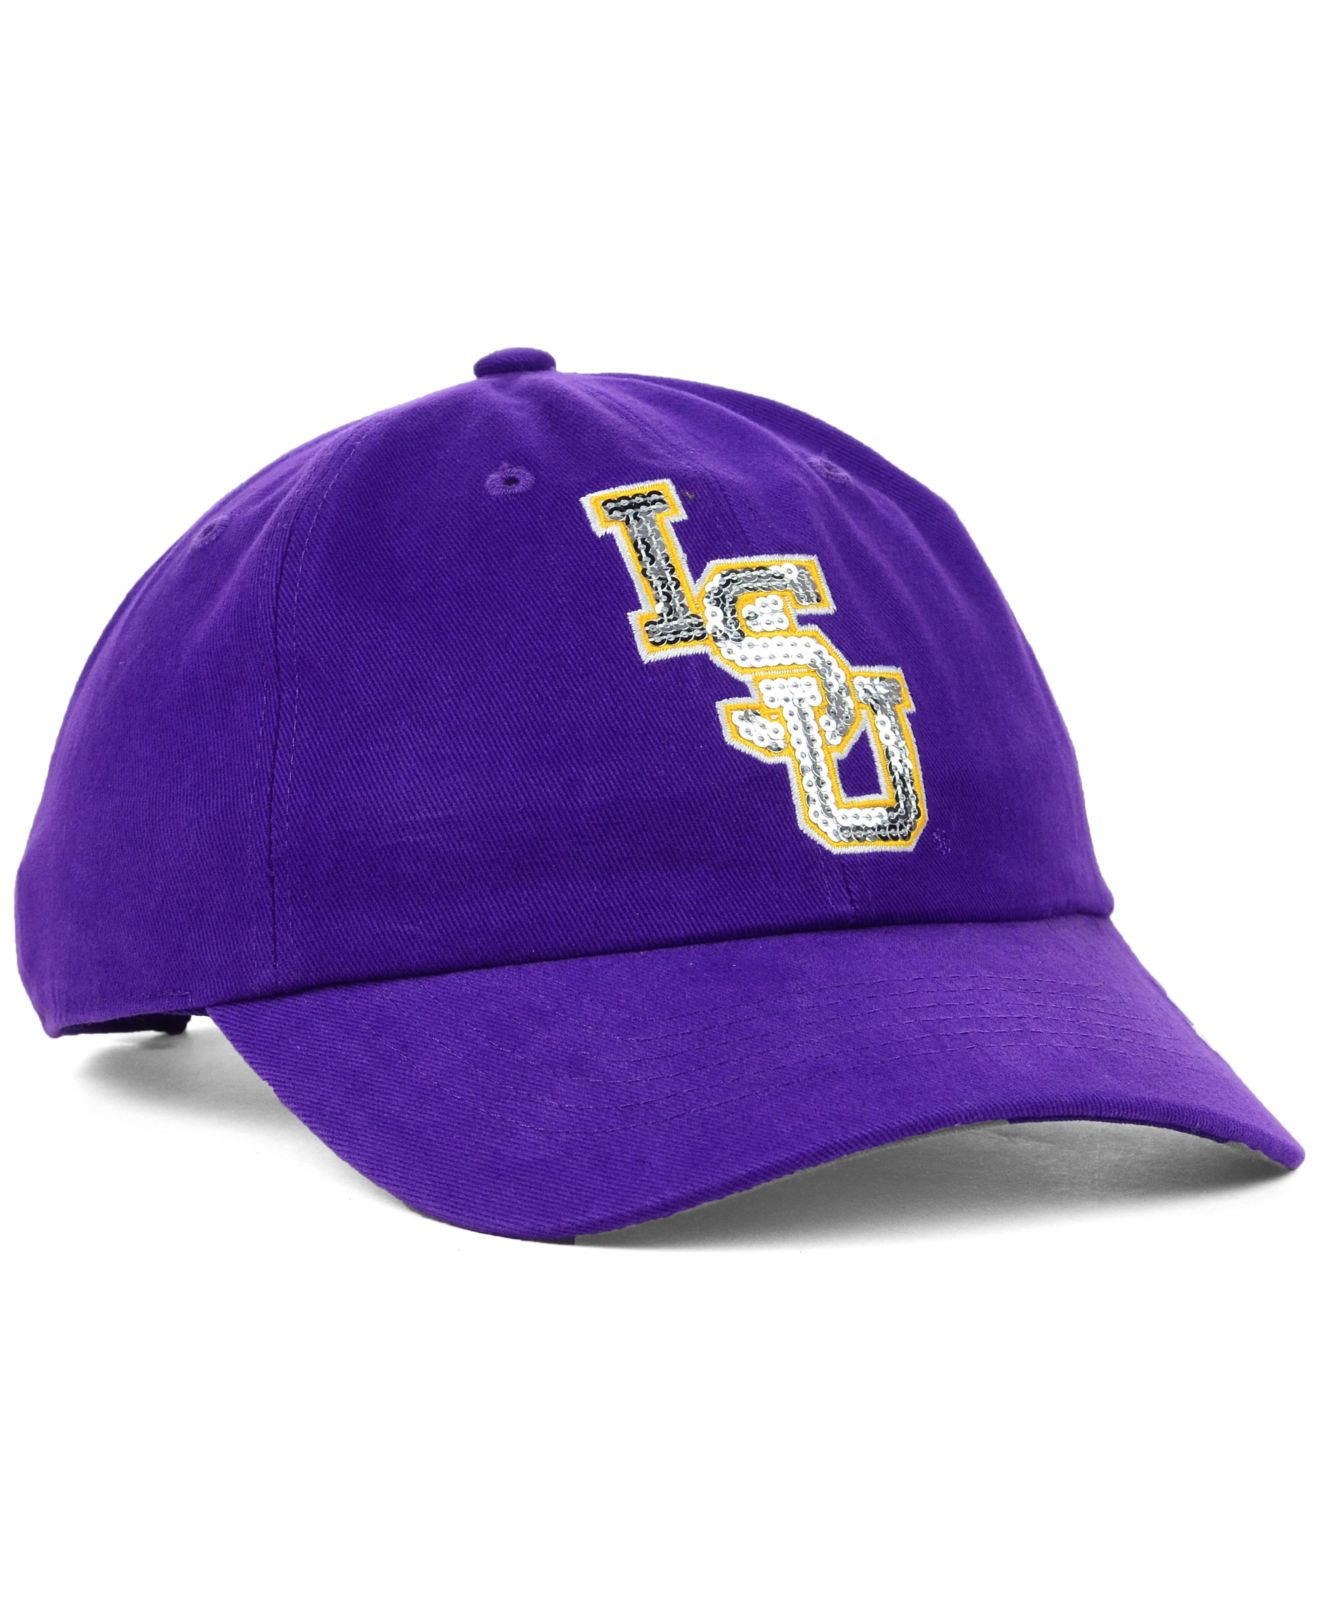 Lyst - 47 Brand Women s Lsu Tigers Natalie Sparkle Cap in Purple 2ae961de1e